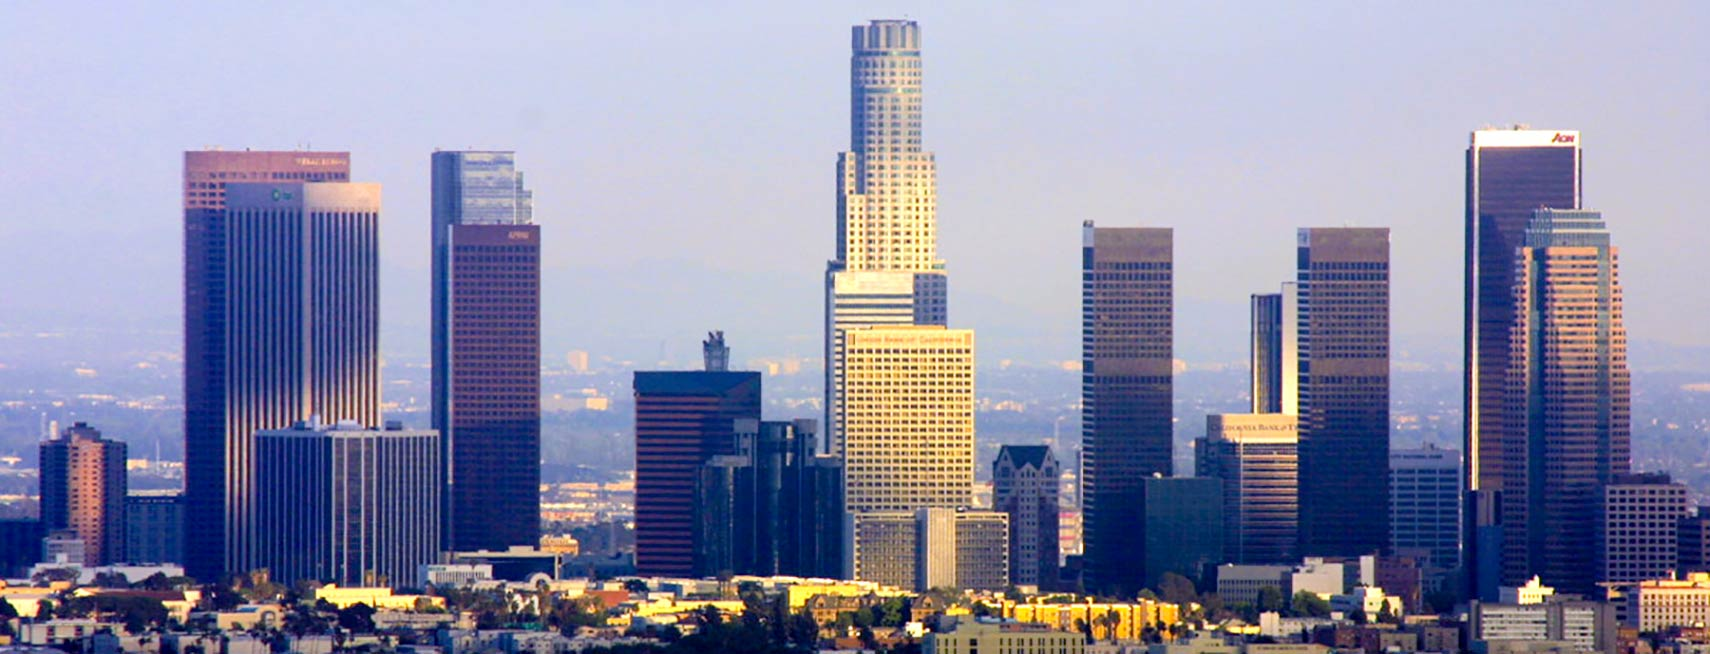 Google Map of the City Los Angeles, USA - Nations Online Project